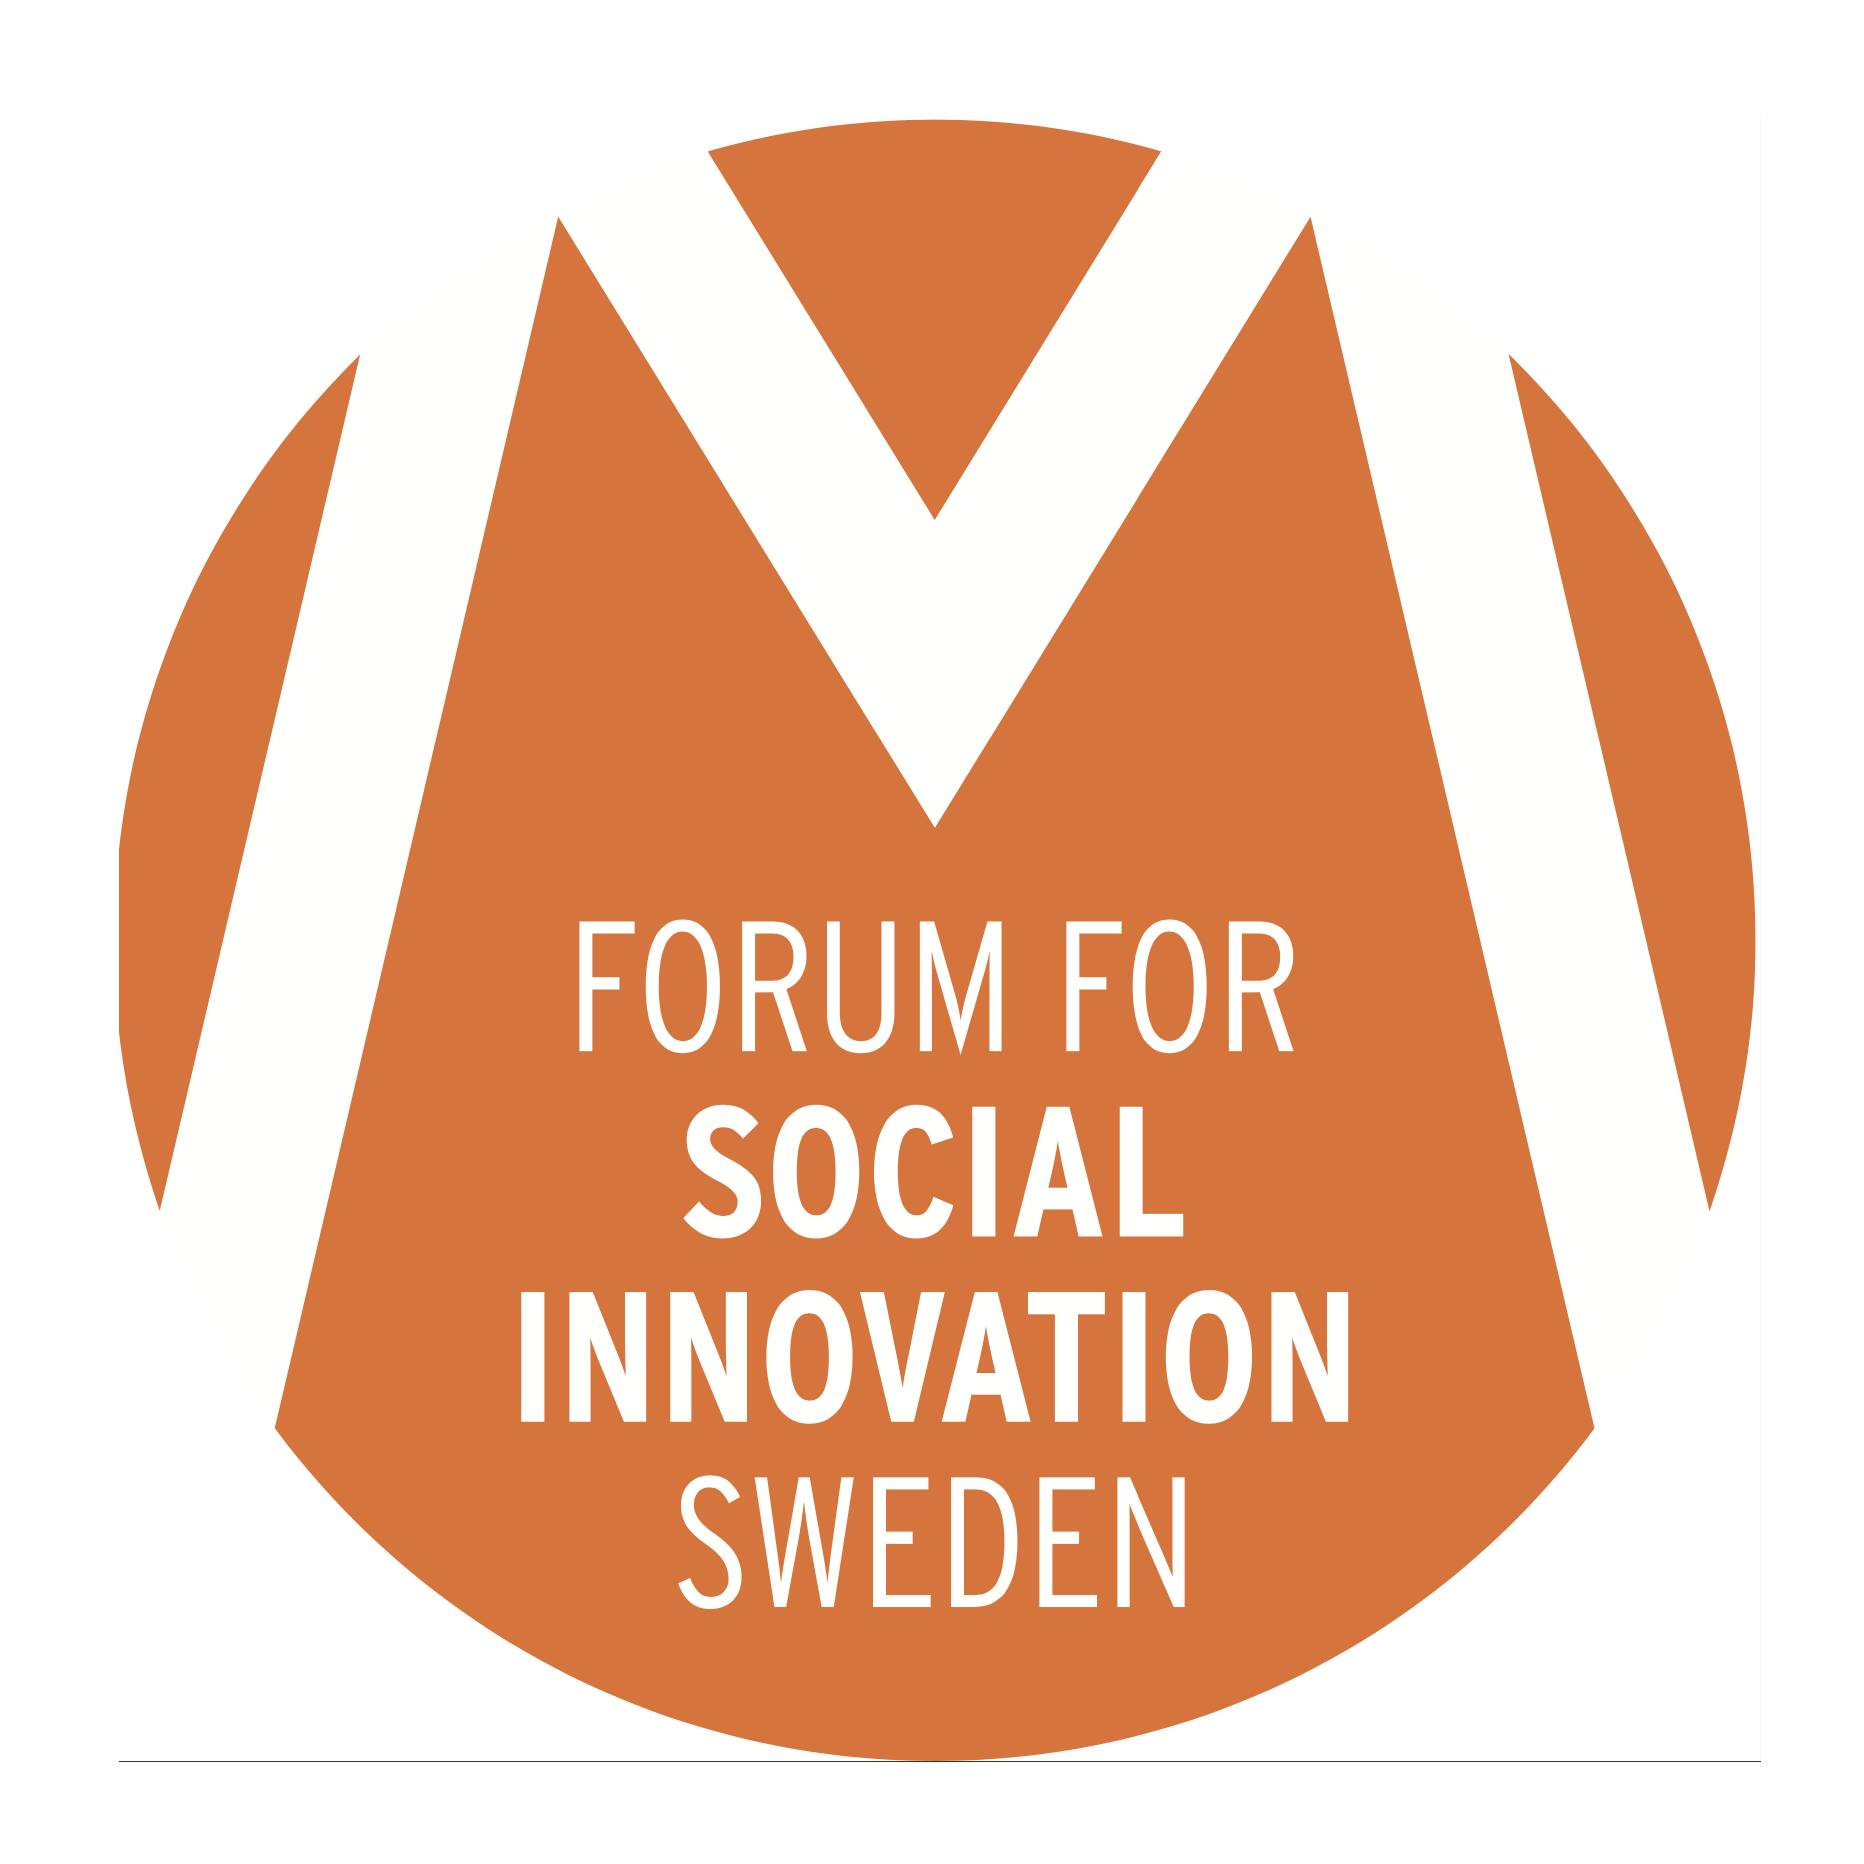 Forum for Social Innovation Sweden